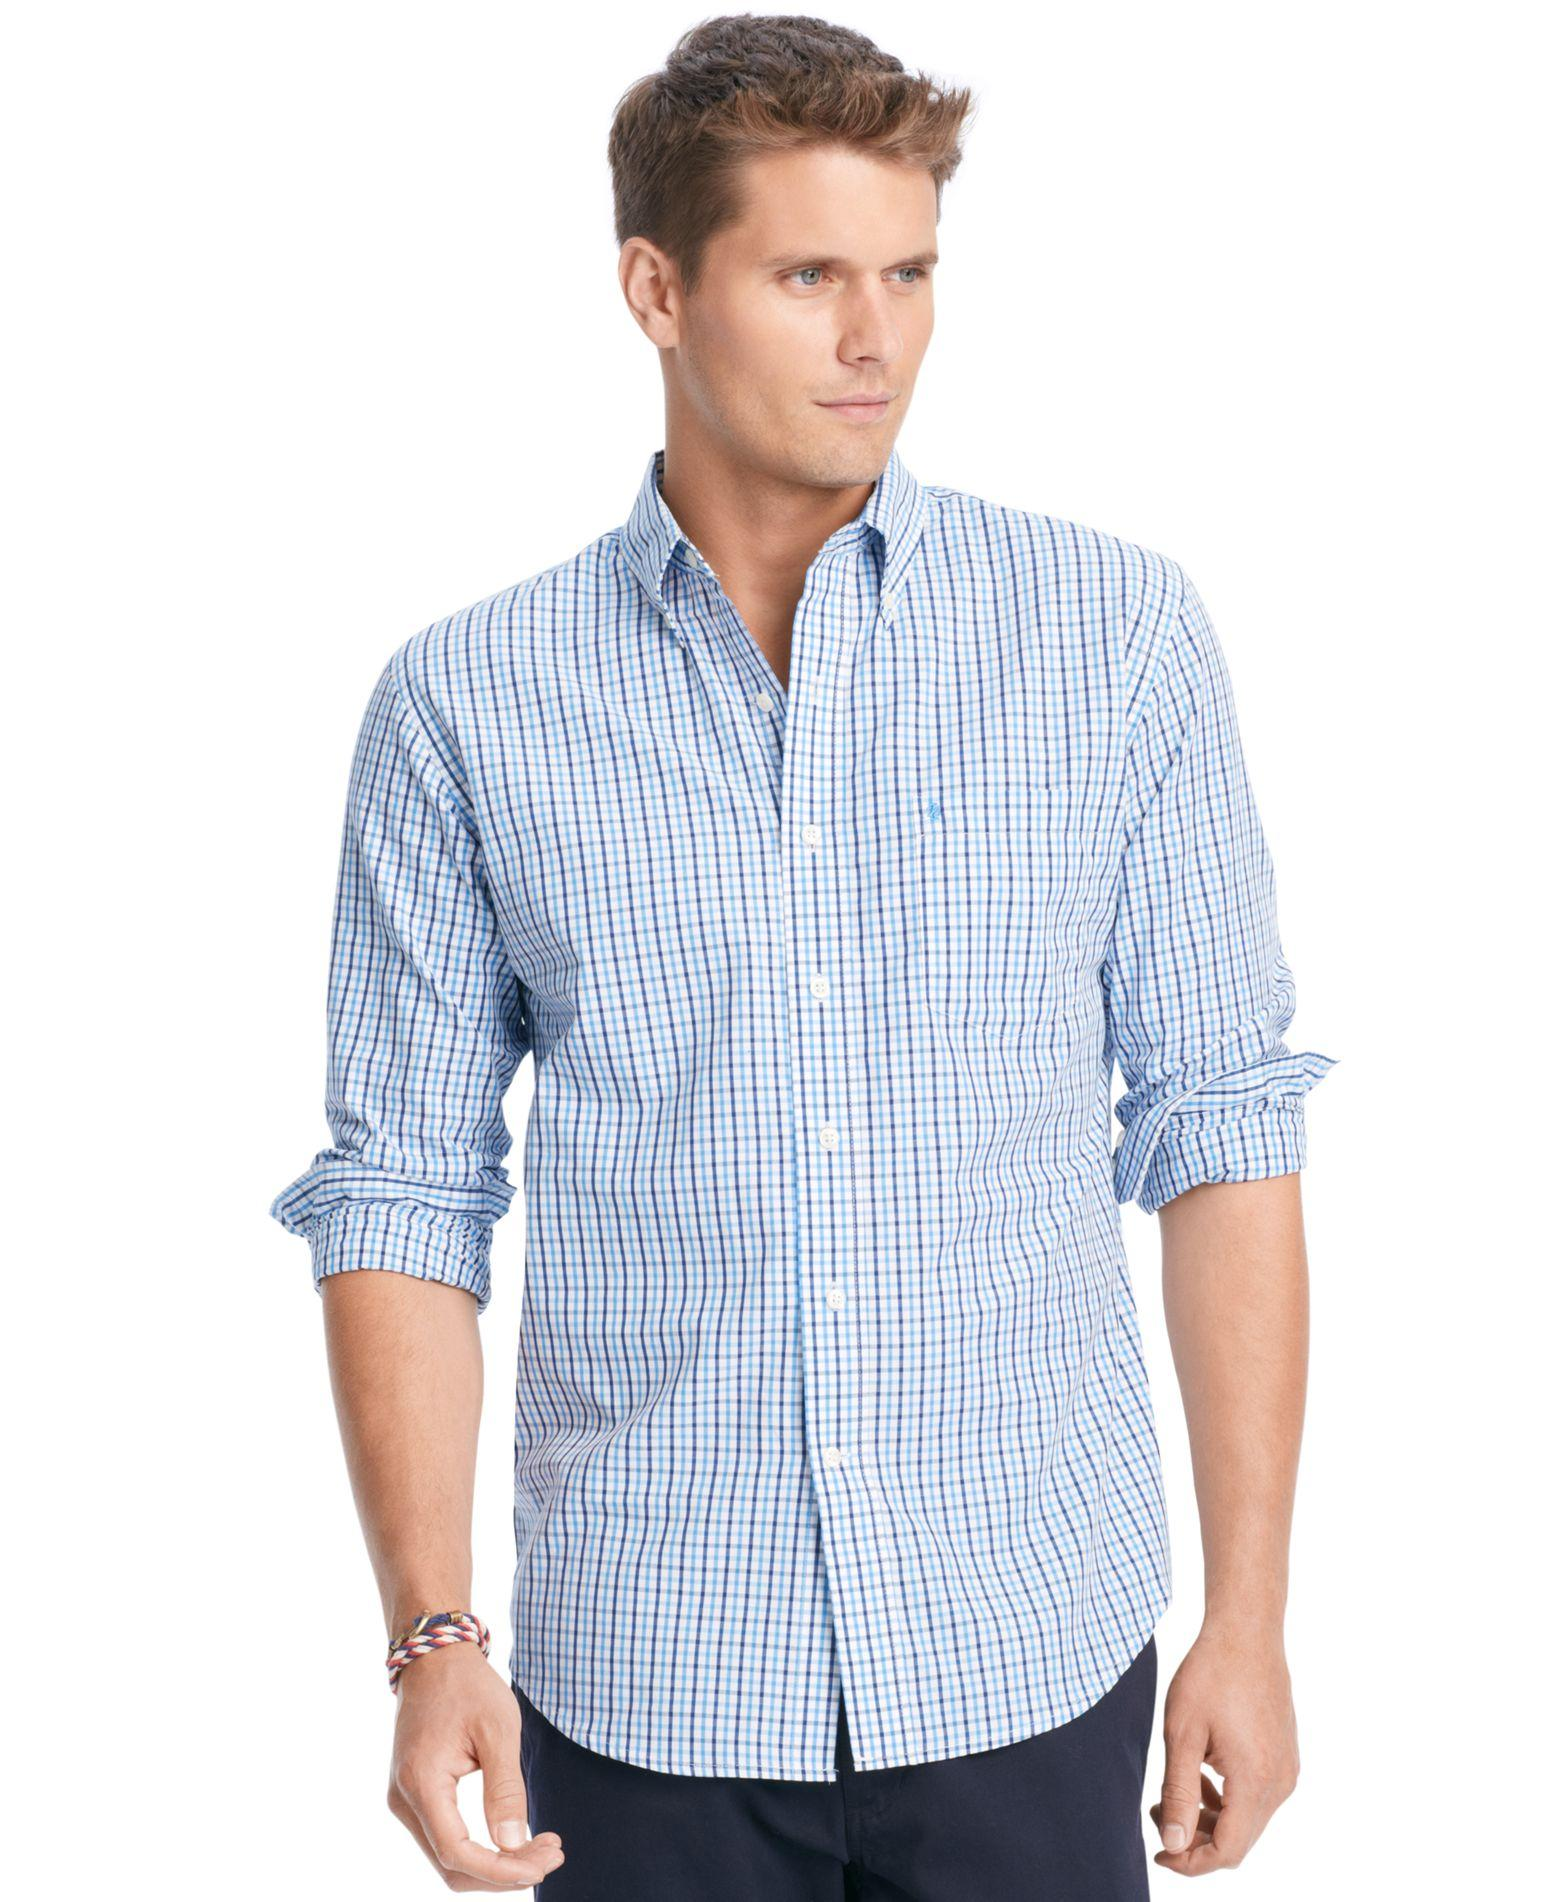 Izod tattersall button down shirt in blue for men lyst for Izod button down shirts